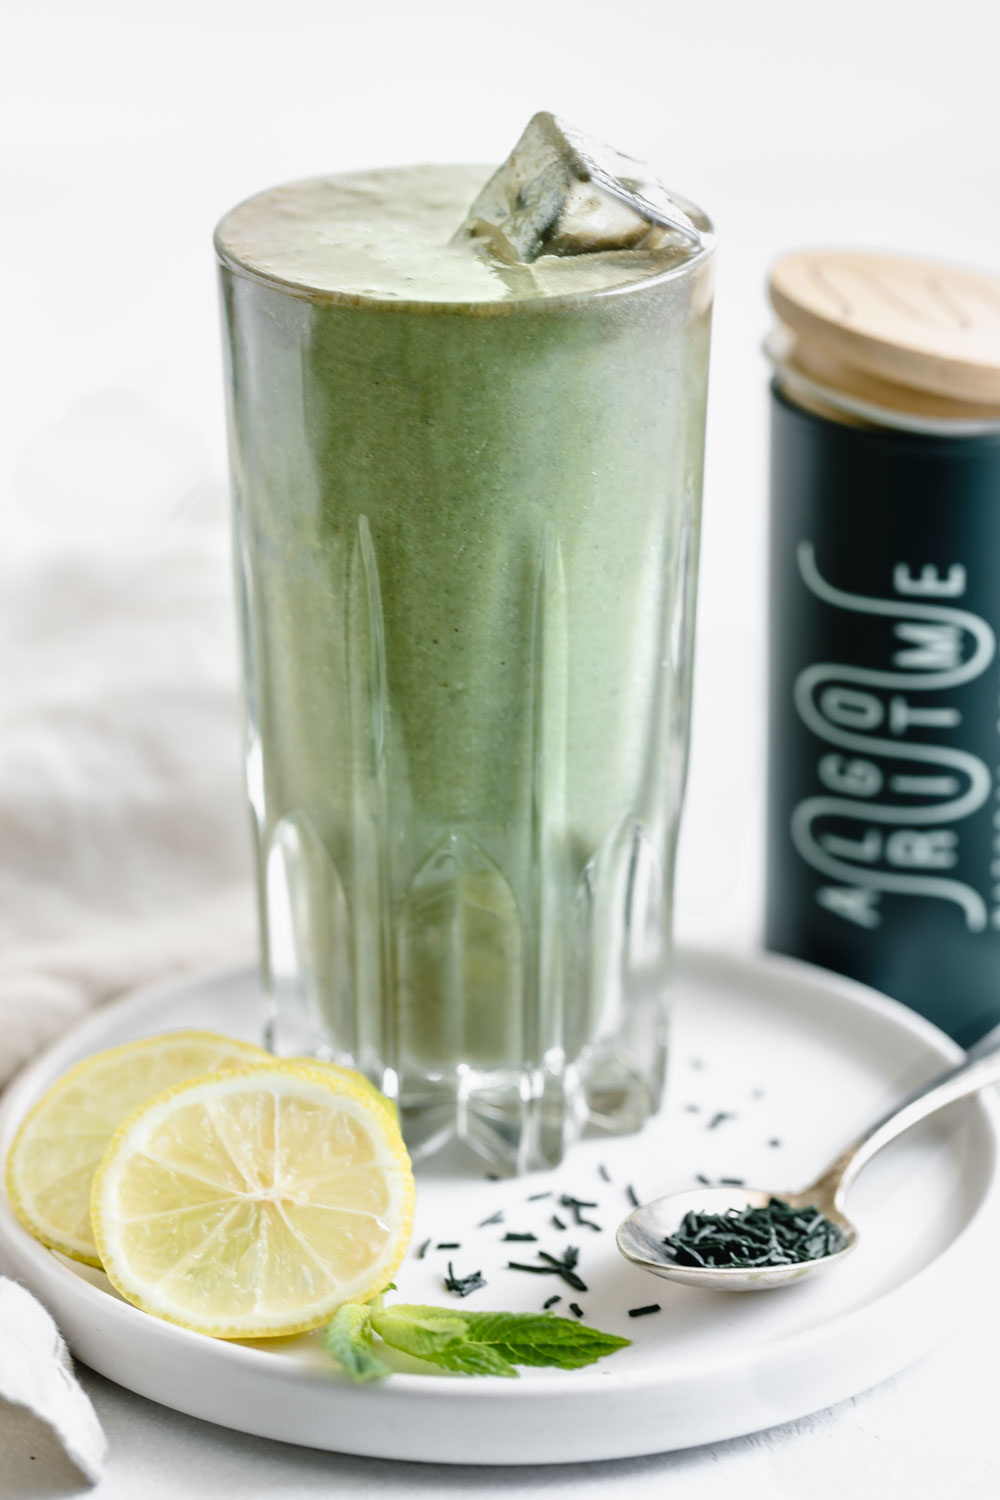 green smoothie in tall glass with ice cubes on white plate with a spoon with spirulina, lemon slices and mint leaves